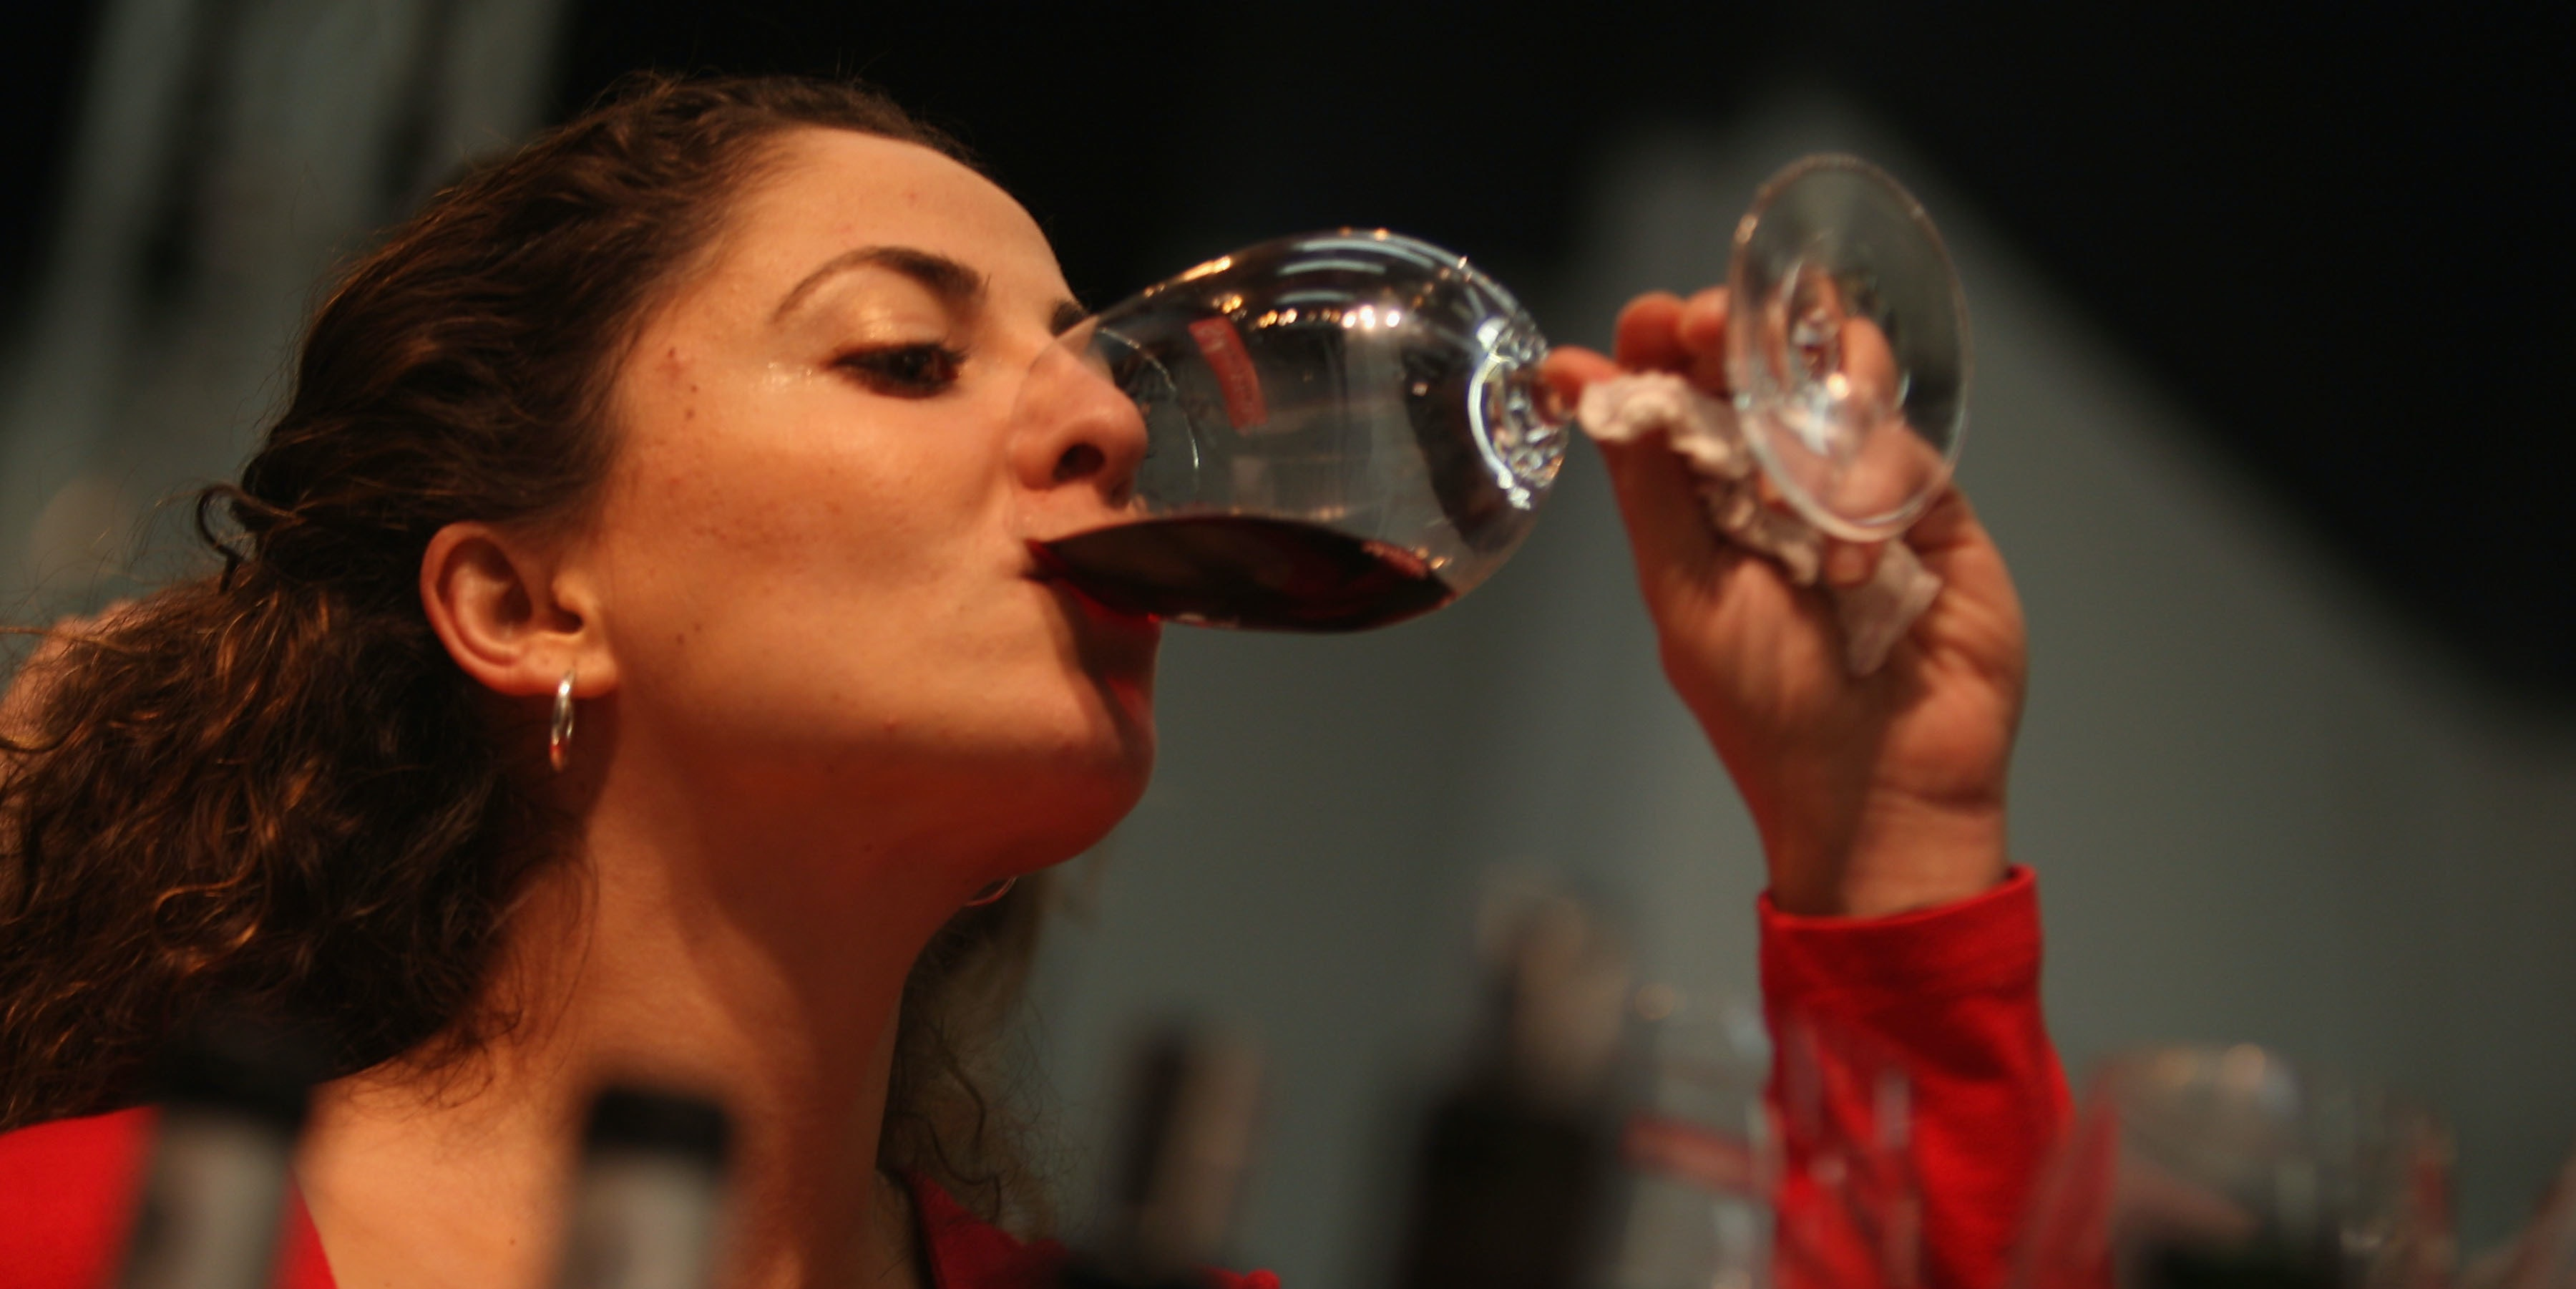 TEL AVIV, ISRAEL - FEBRUARY 26: An Israeli woman tastes a red wine at the three-day 2nd International Wines Exhibition which opened February 26, 2008 in Tel Aviv. The fair is a showcase for wines and wineries from Israel and around the world, with special emphasis on the exhibition of the Israeli rising wine industry.  (Photo by David Silverman/Getty Images)